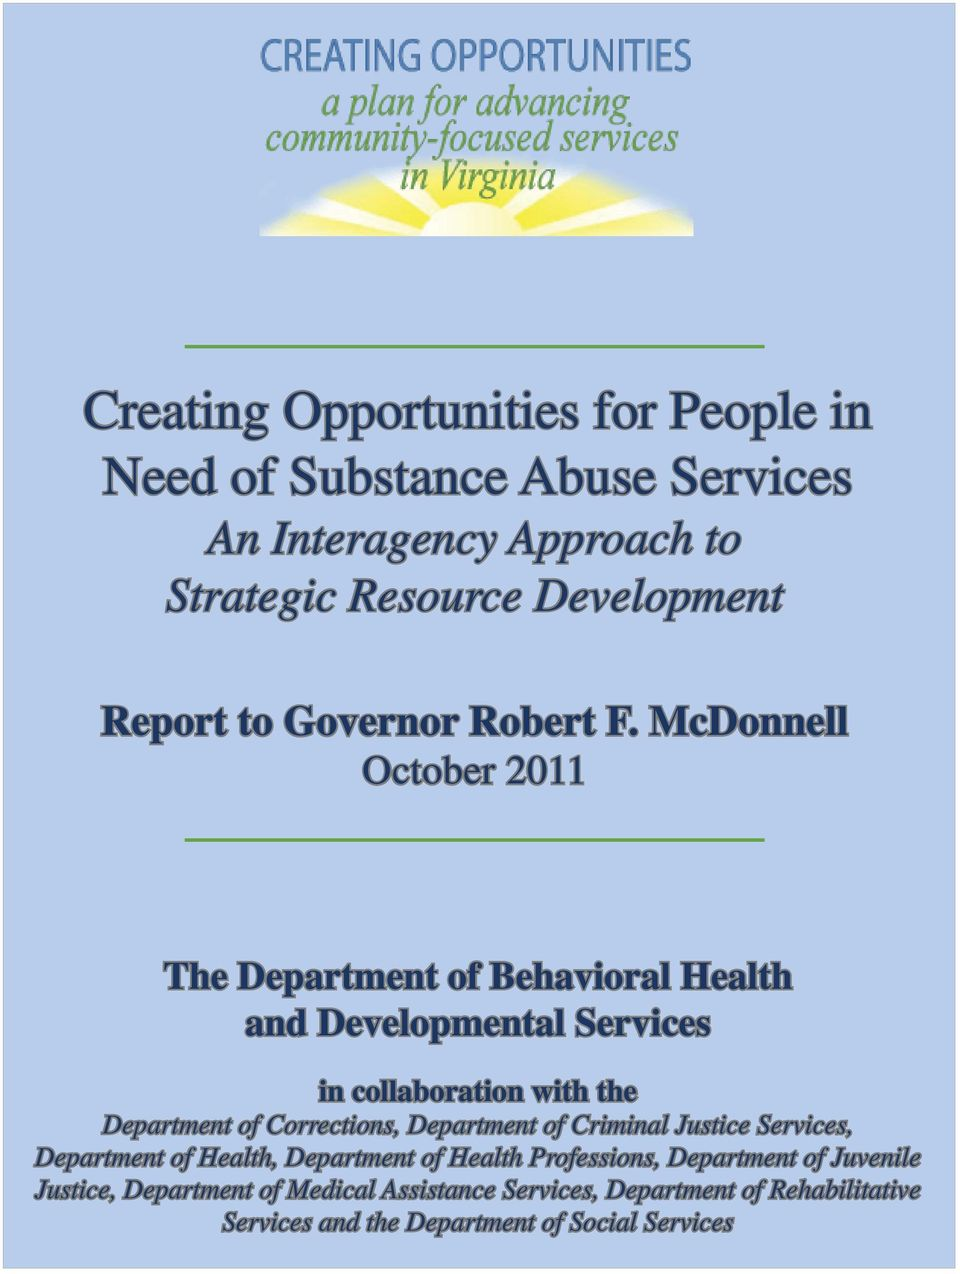 McDonnell October 2011 The Department of Behavioral Health and Developmental Services in collaboration with the Department of